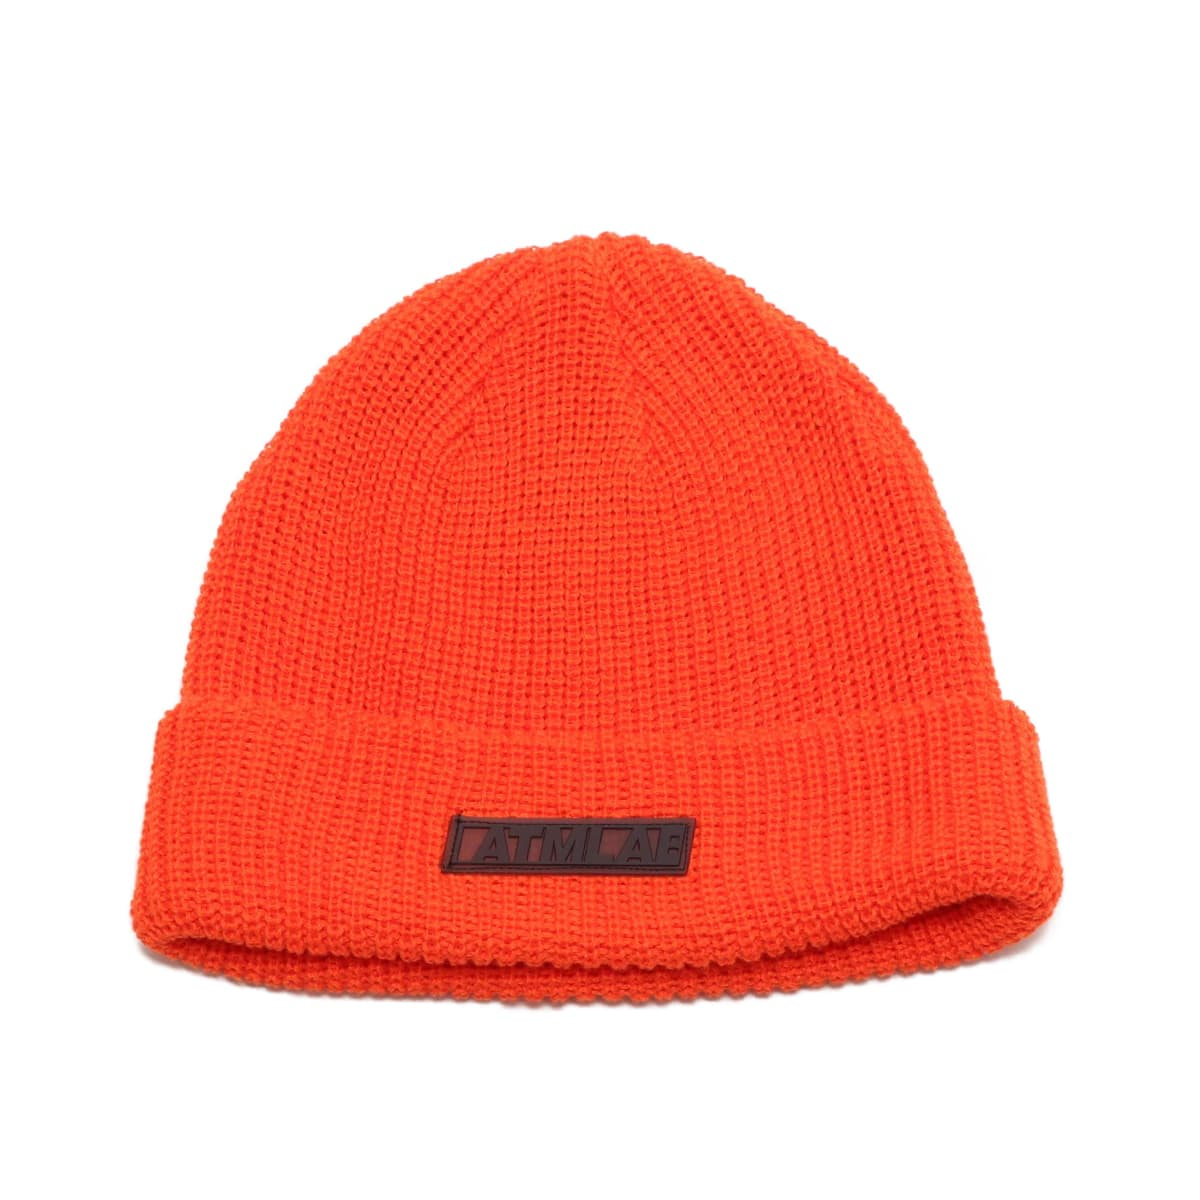 ATMOS LAB LOW WATCH CAP ORANGE 19FA-I_photo_large